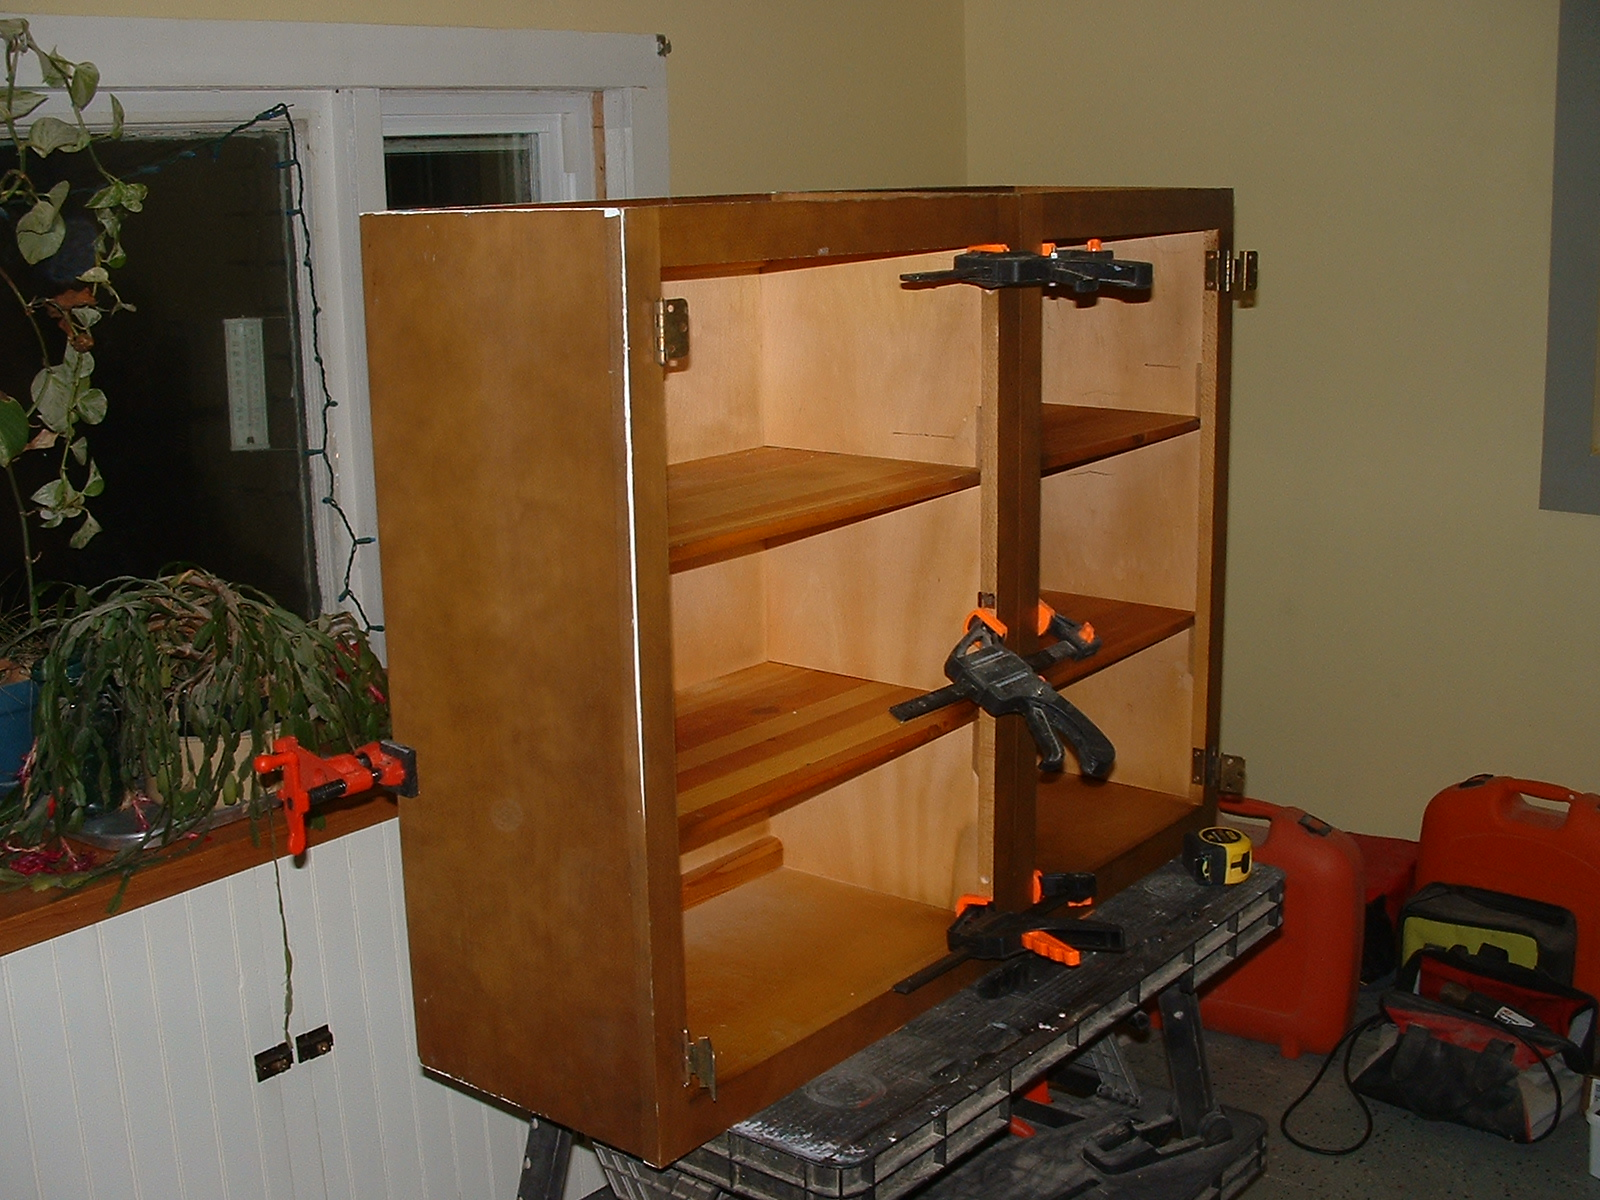 Picture of Clamping the Cabinets Together